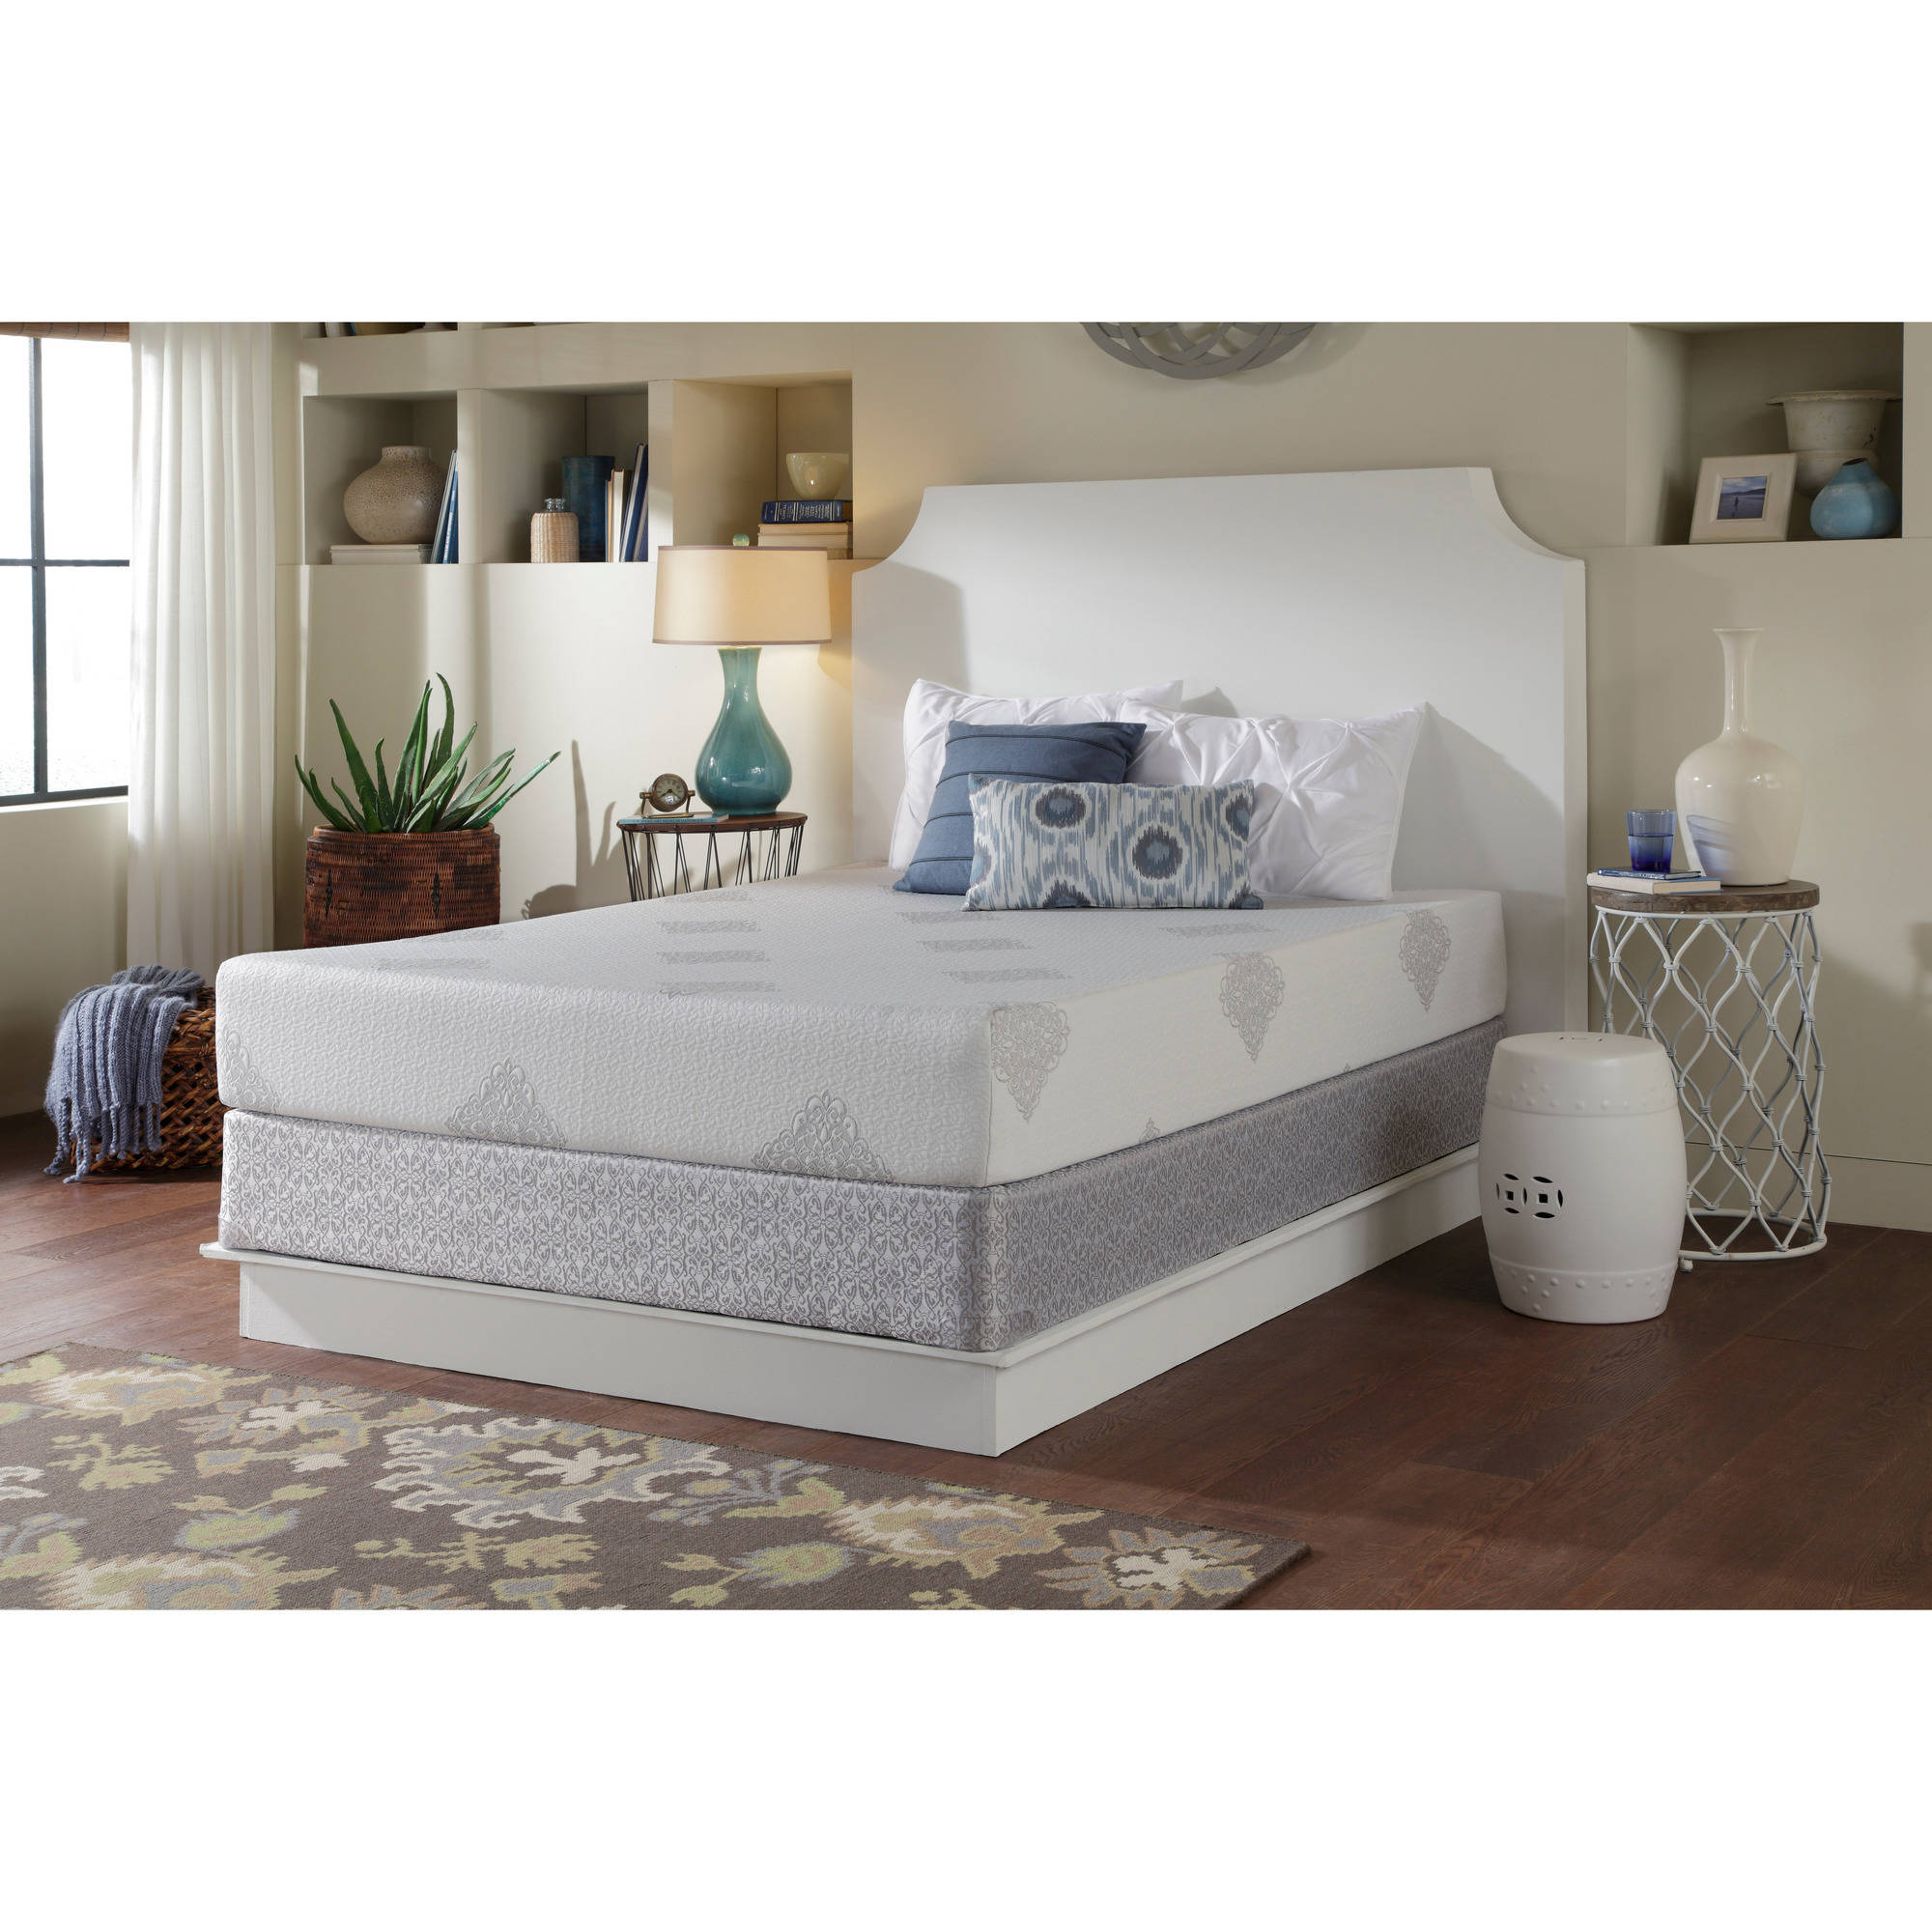 s happy memory foam category freedom home mattresses set product centers mattress king archives